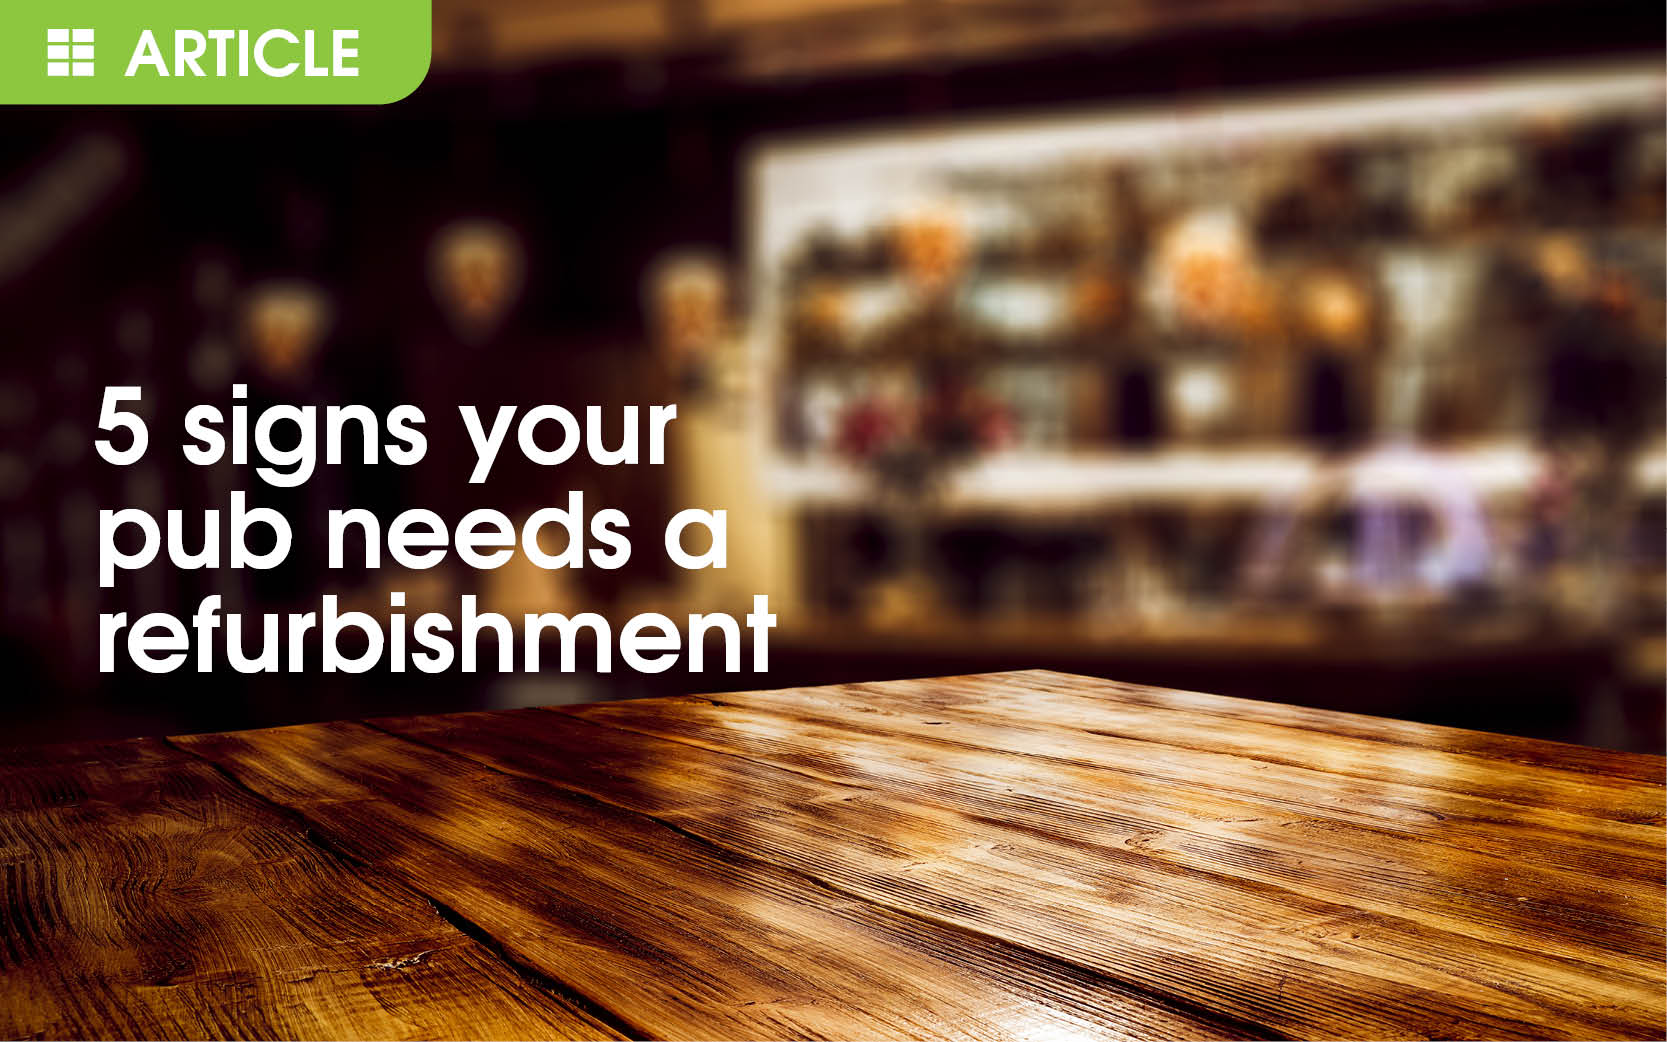 5 Signs Your Club Needs A Refurbishment